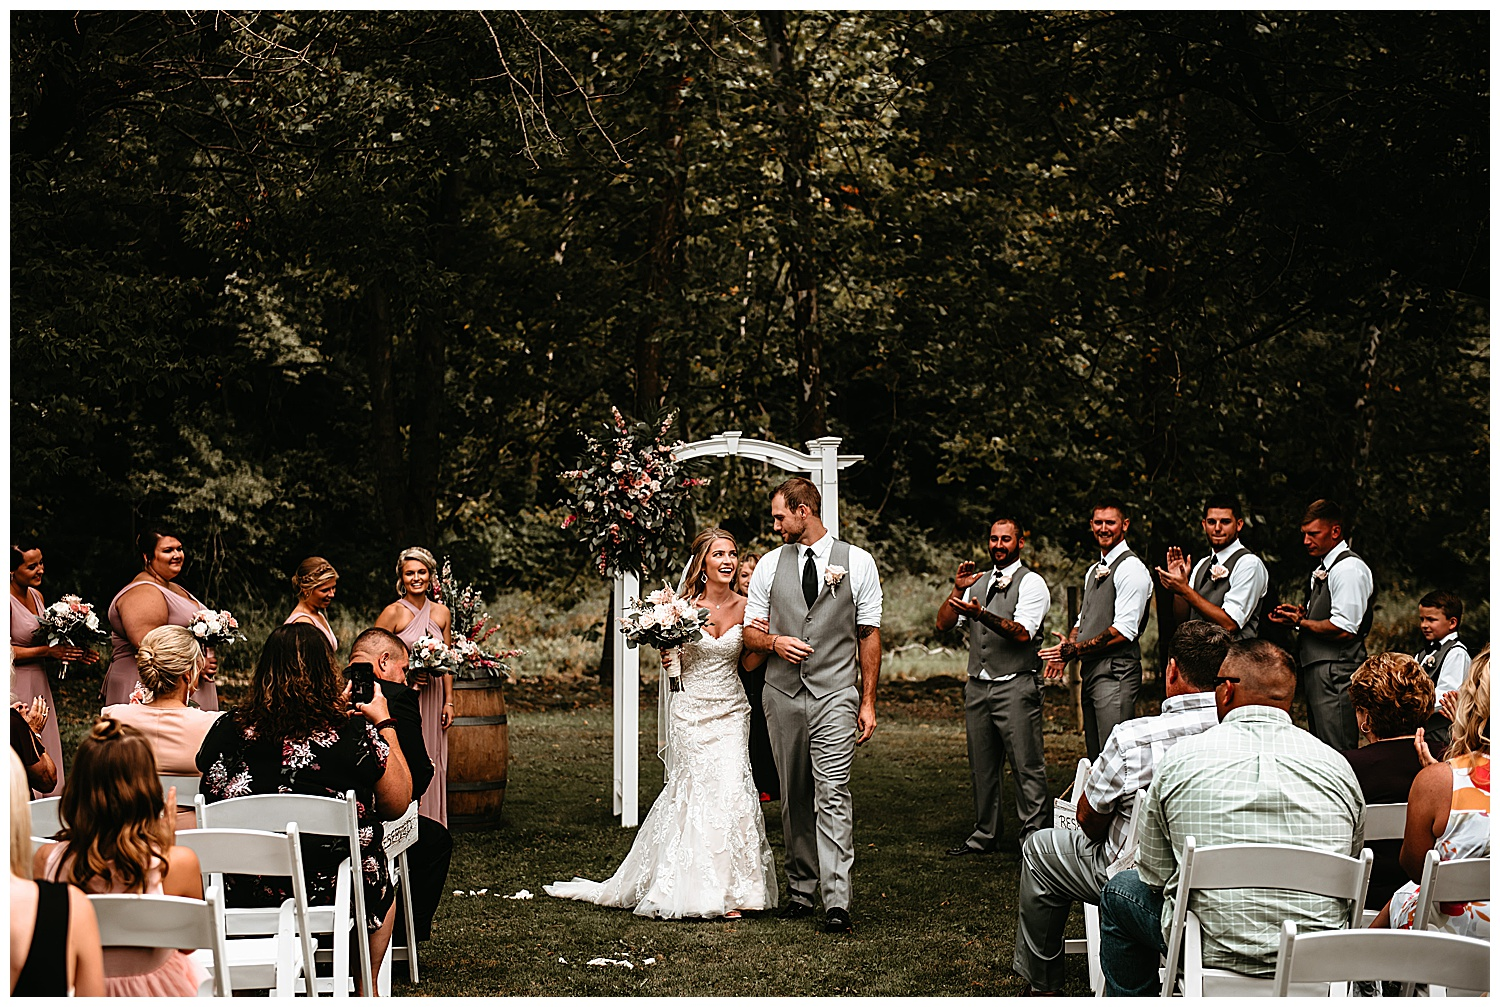 NEPA-Bloomgsburg-Wedding-Photographer-at-The-Barn-in-State-College-PA_0015.jpg